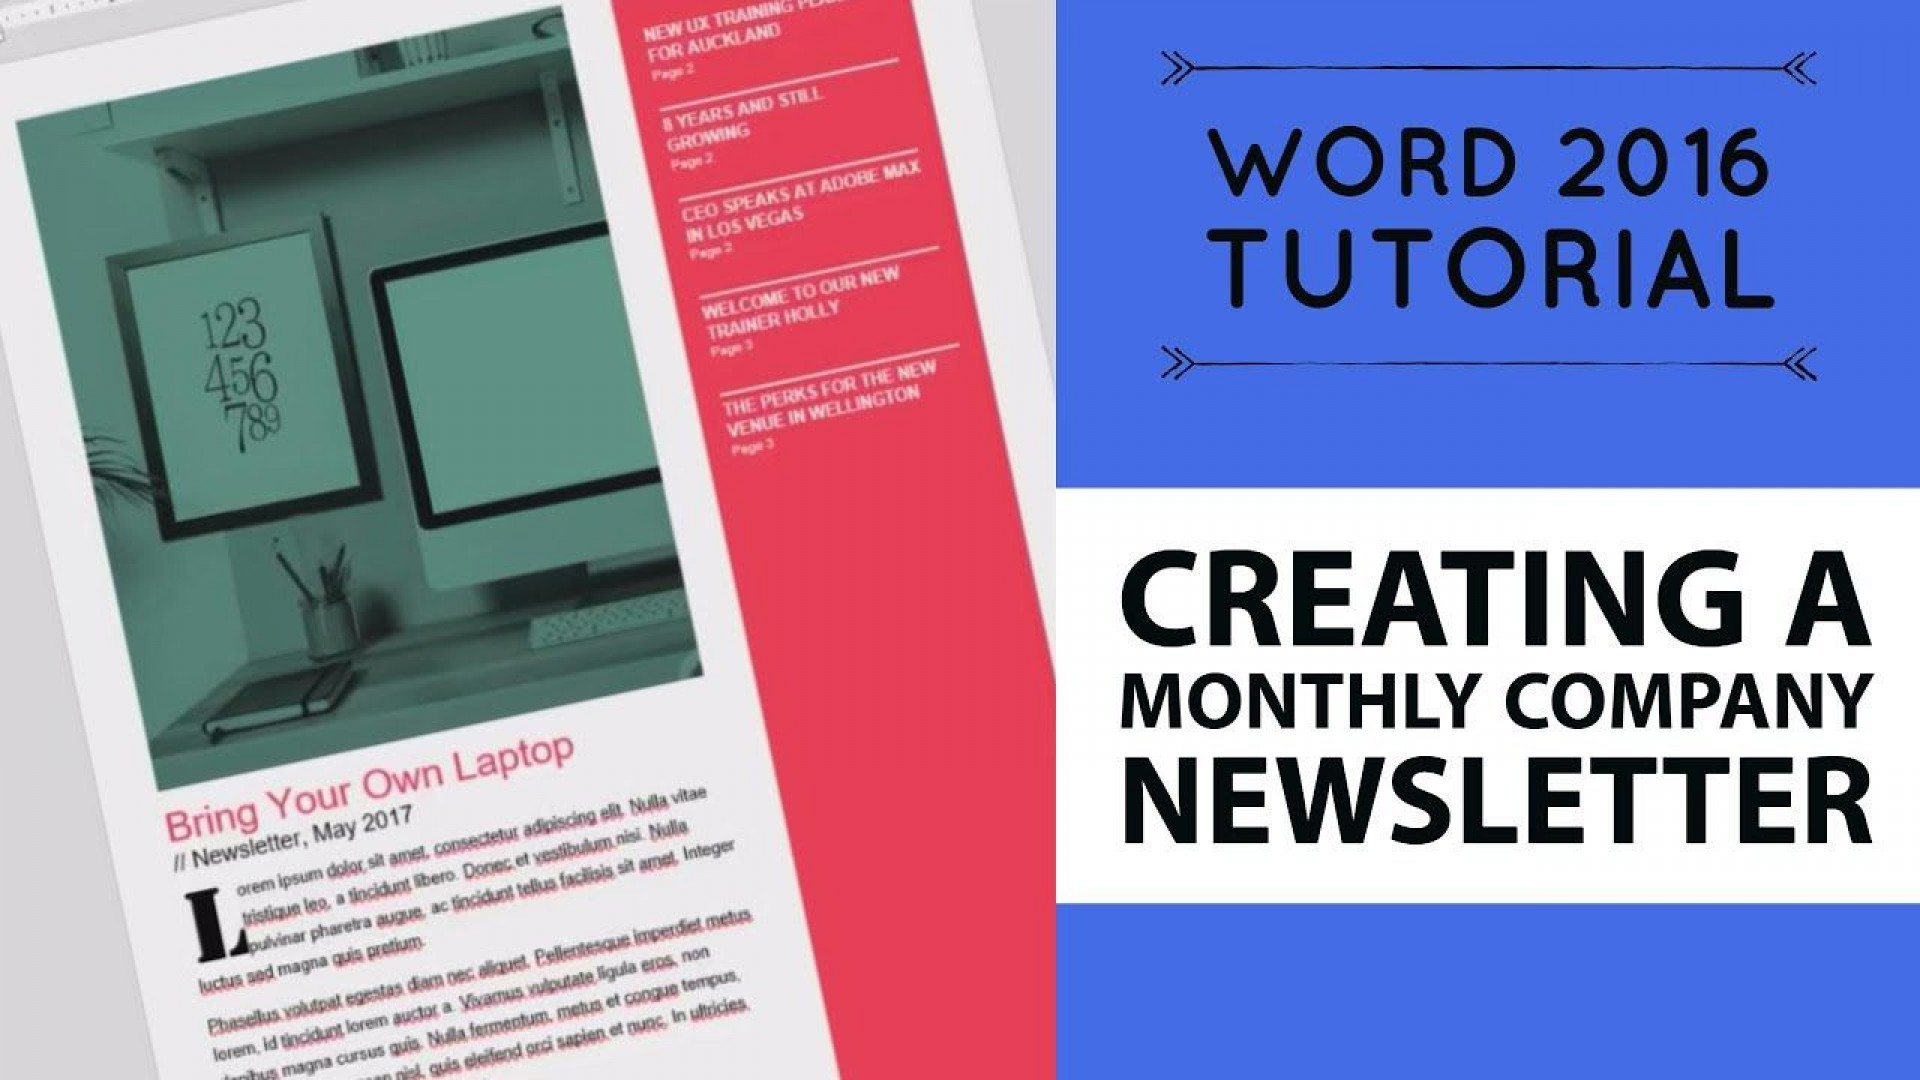 008 Magnificent Microsoft Word Newsletter Template High Definition  M 2007 Free Download For Teacher1920